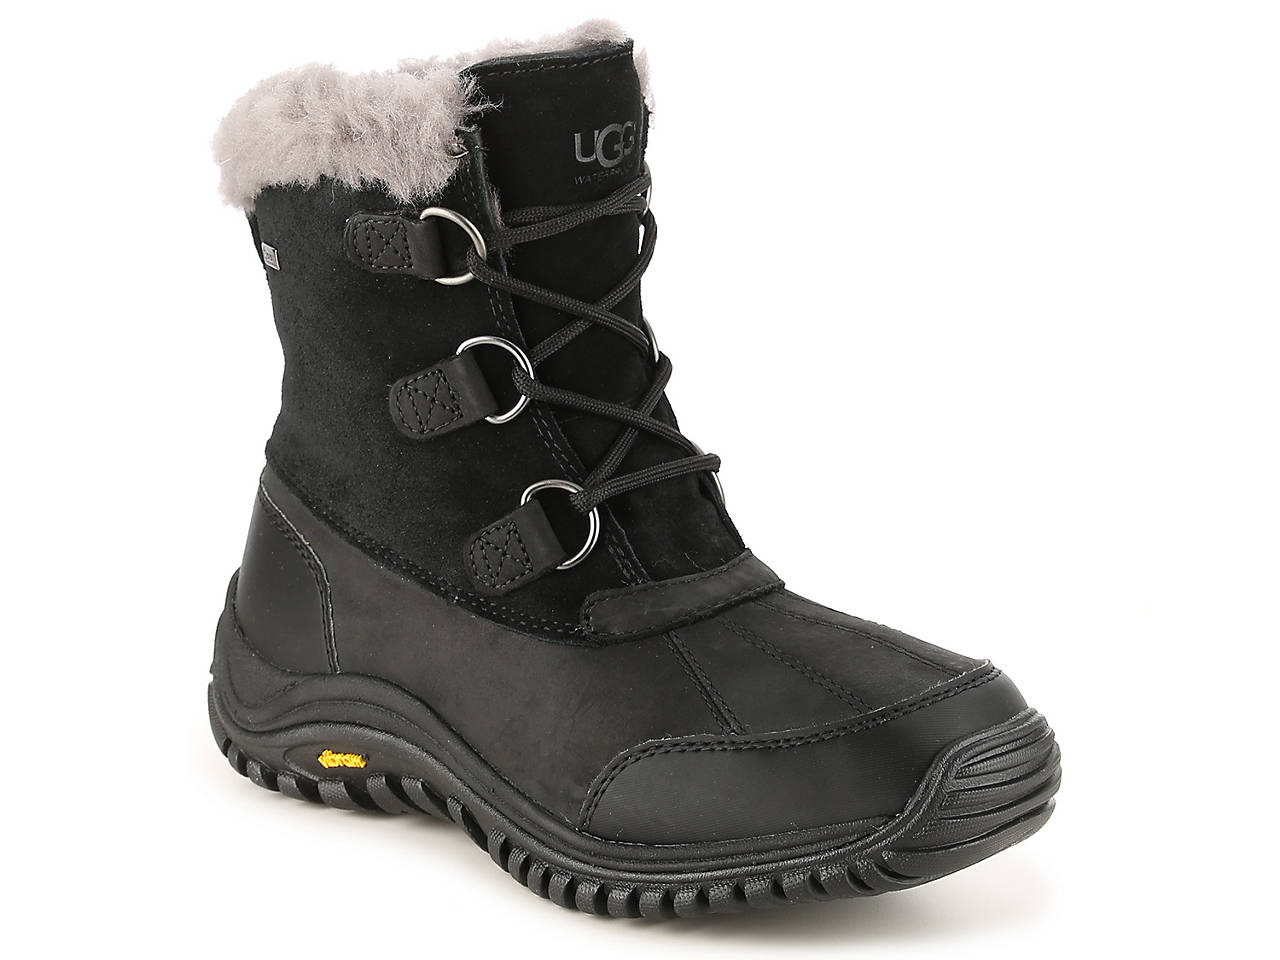 3c8bad1a7e9 UGG Ostrander Snow Boot Women's Shoes | DSW